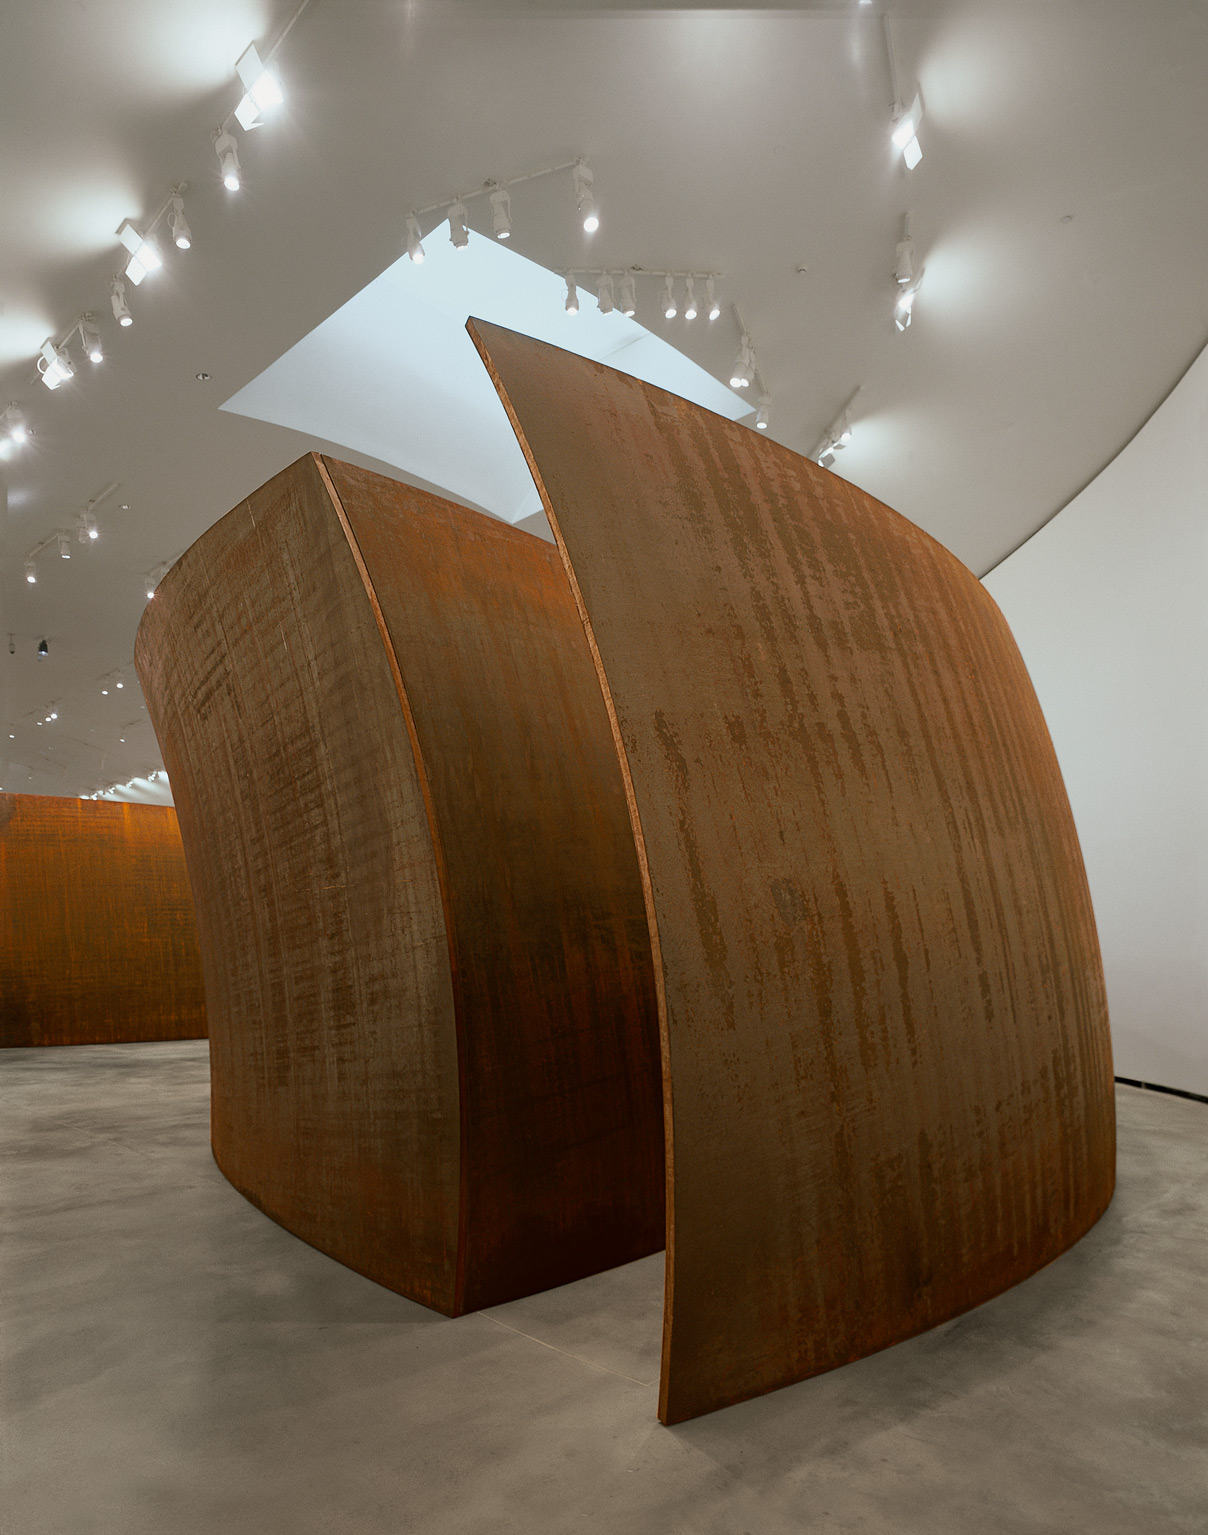 Blind Spot Reversed | The Matter of Time | Richard Serra | Guggenheim Bilbao Museoa